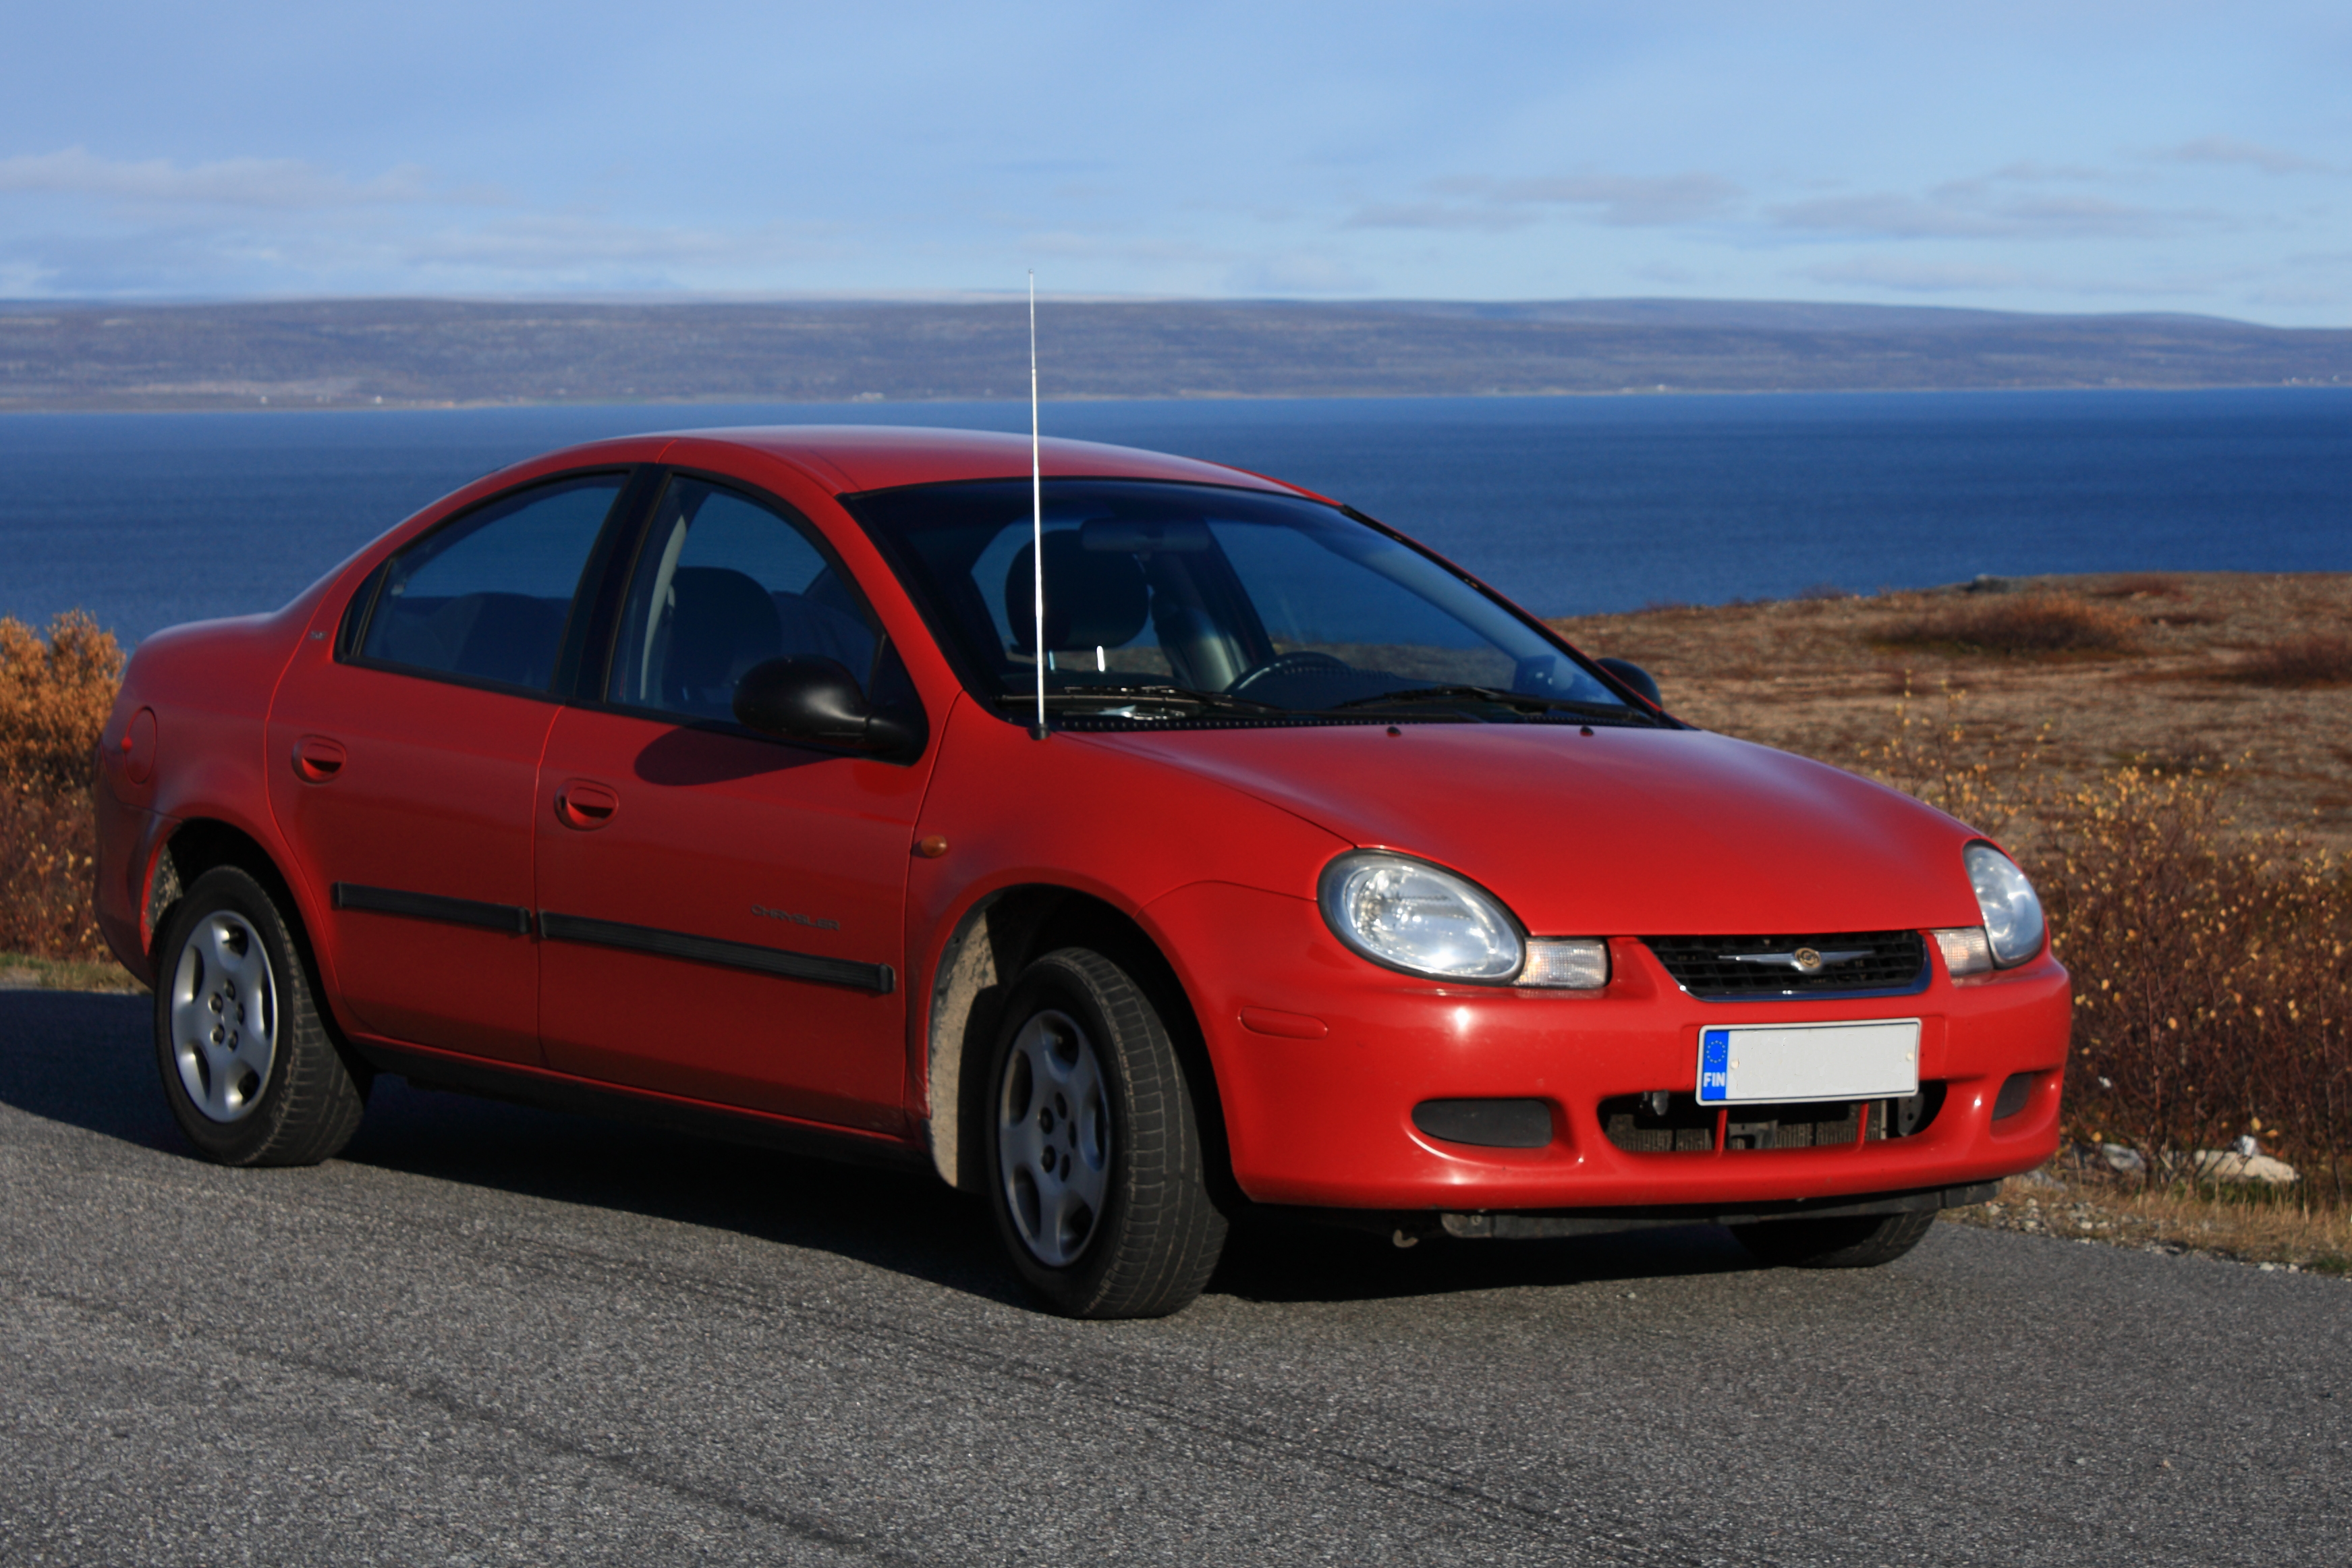 Chrysler Neon #1